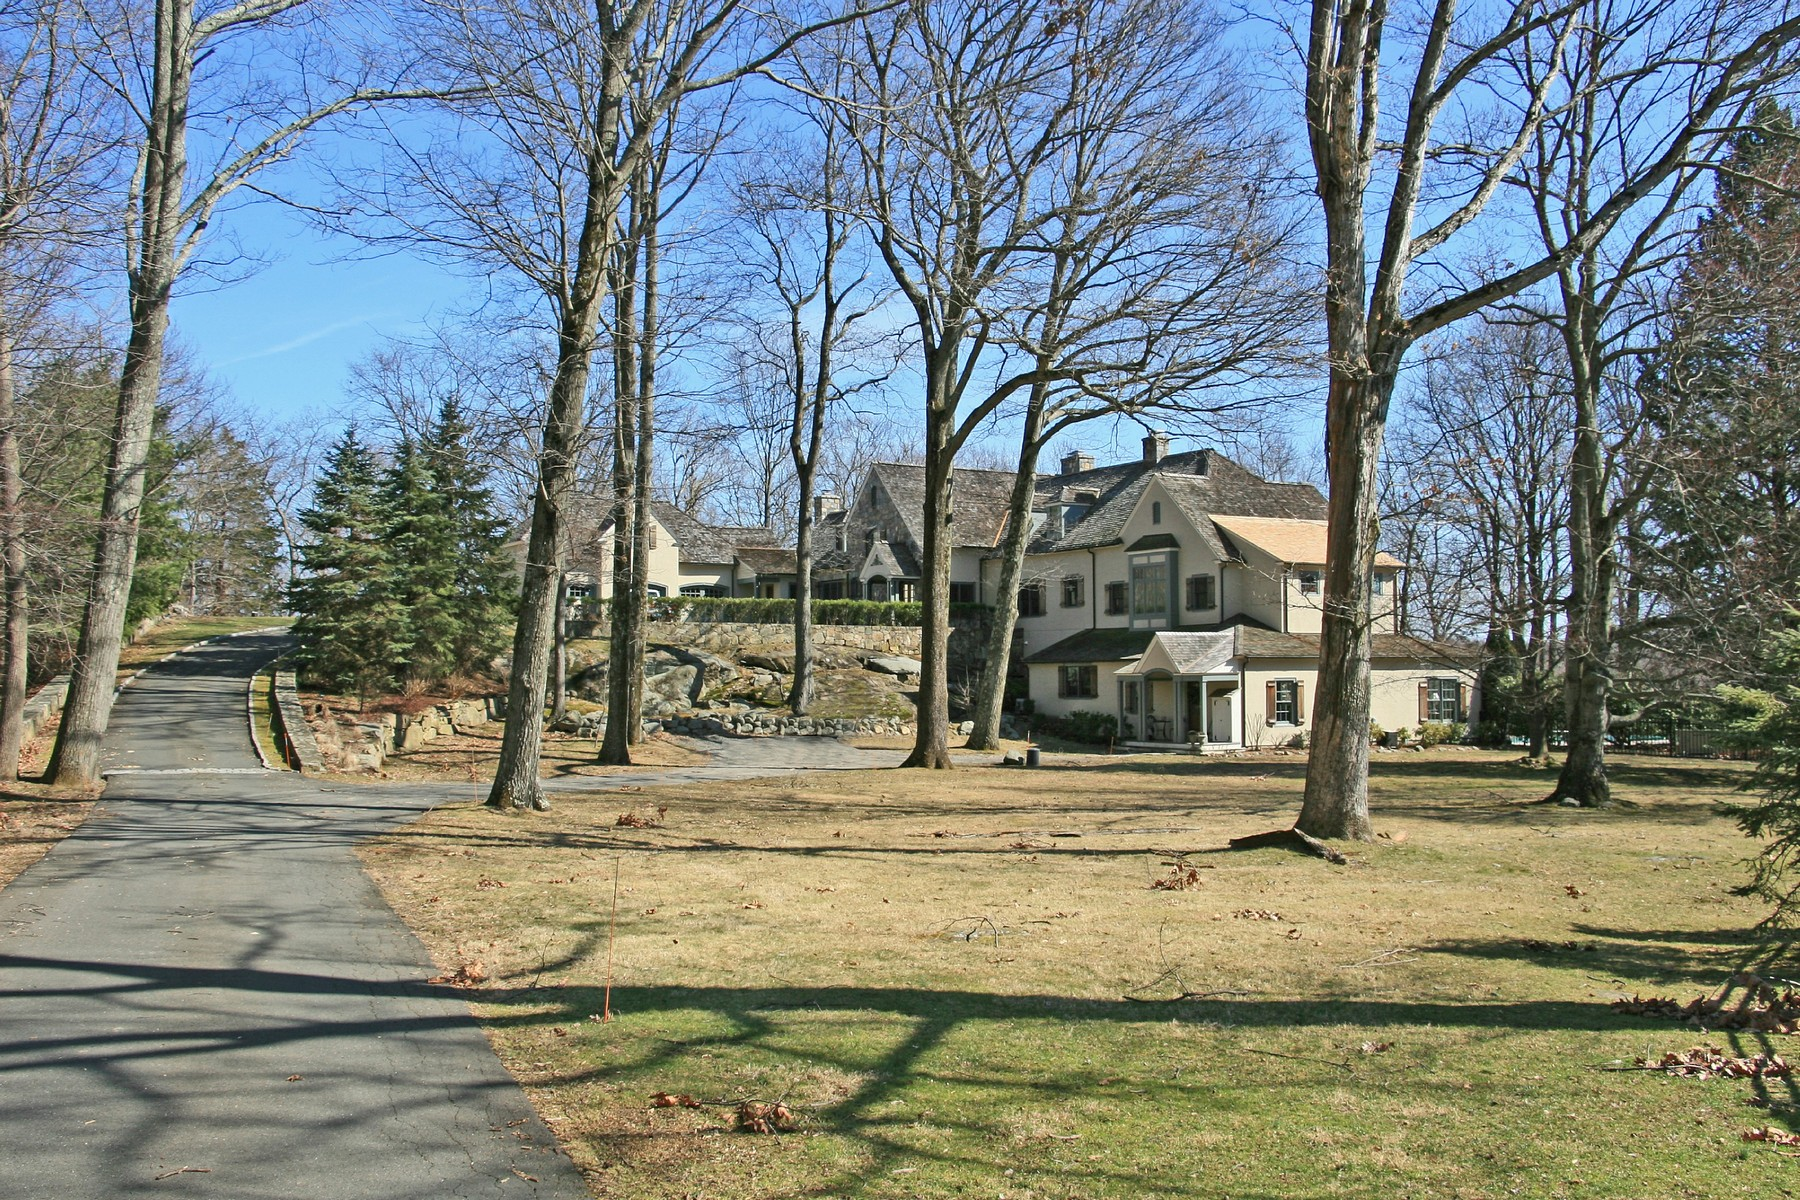 Single Family Home for Sale at Totally Remodeled & Expanded Colonial 114 Nod Road Ridgefield, Connecticut, 06877 United States